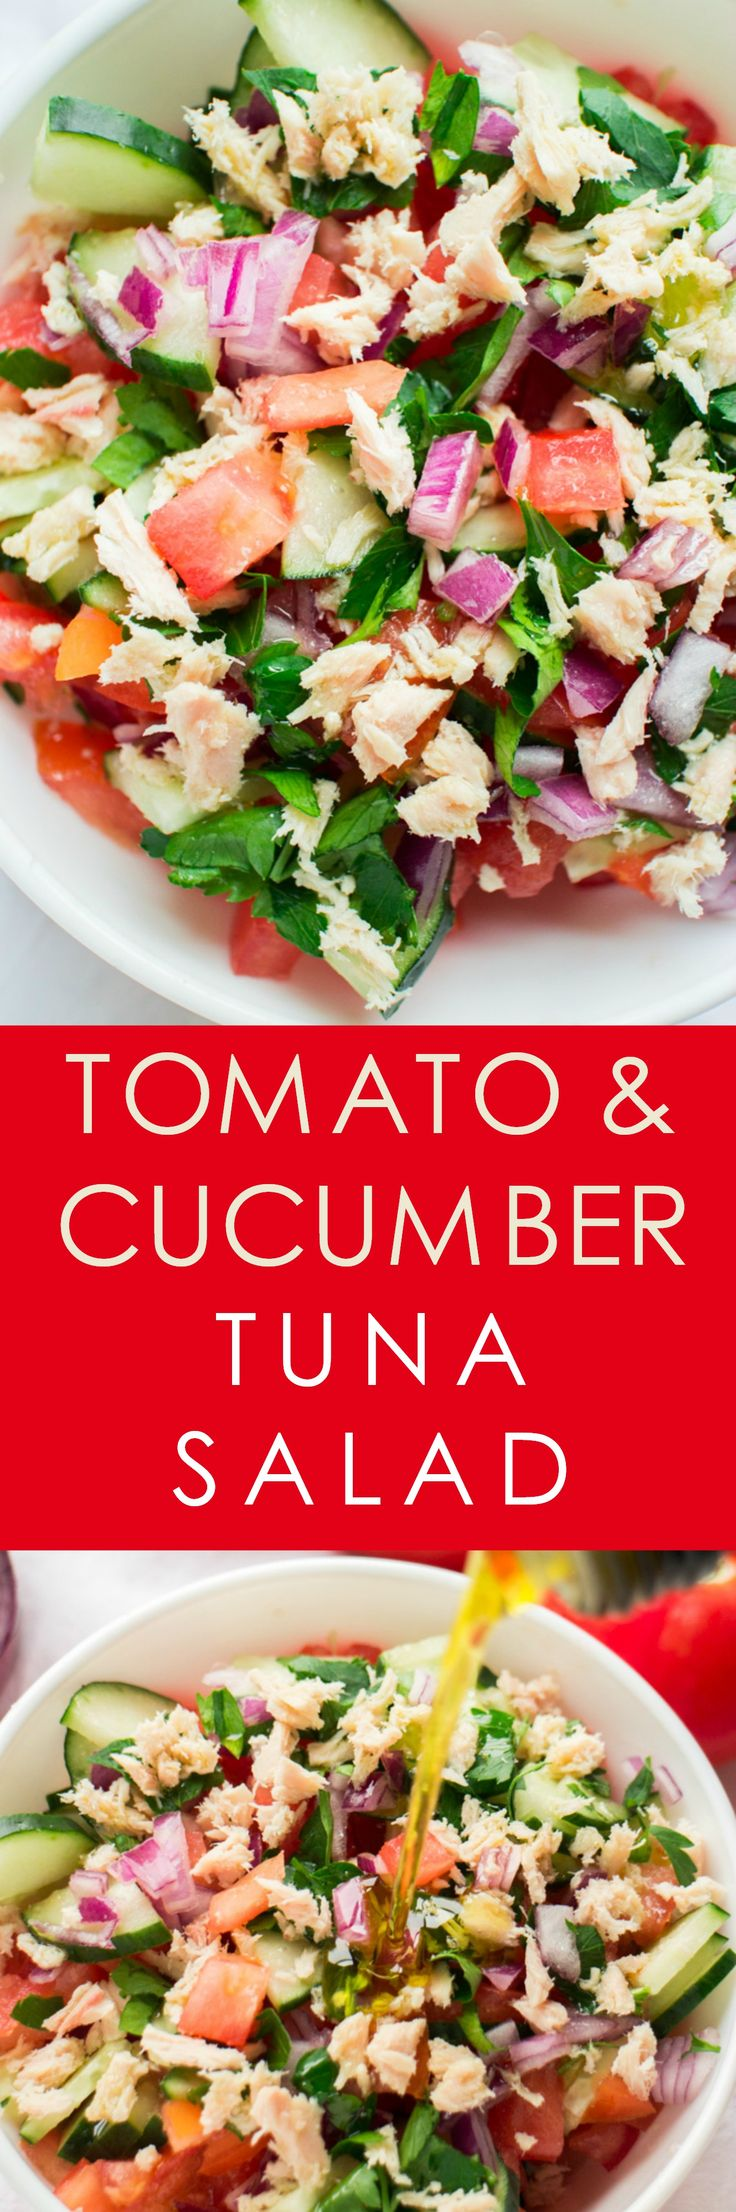 HEALTHY Tomato Cucumber Tuna Salad with olive oil dressing! This easy salad recipe is a Summer favorite! I love using fresh tomatoes, cucumber and onions from the garden! It's completely vegan with no dairy! AD